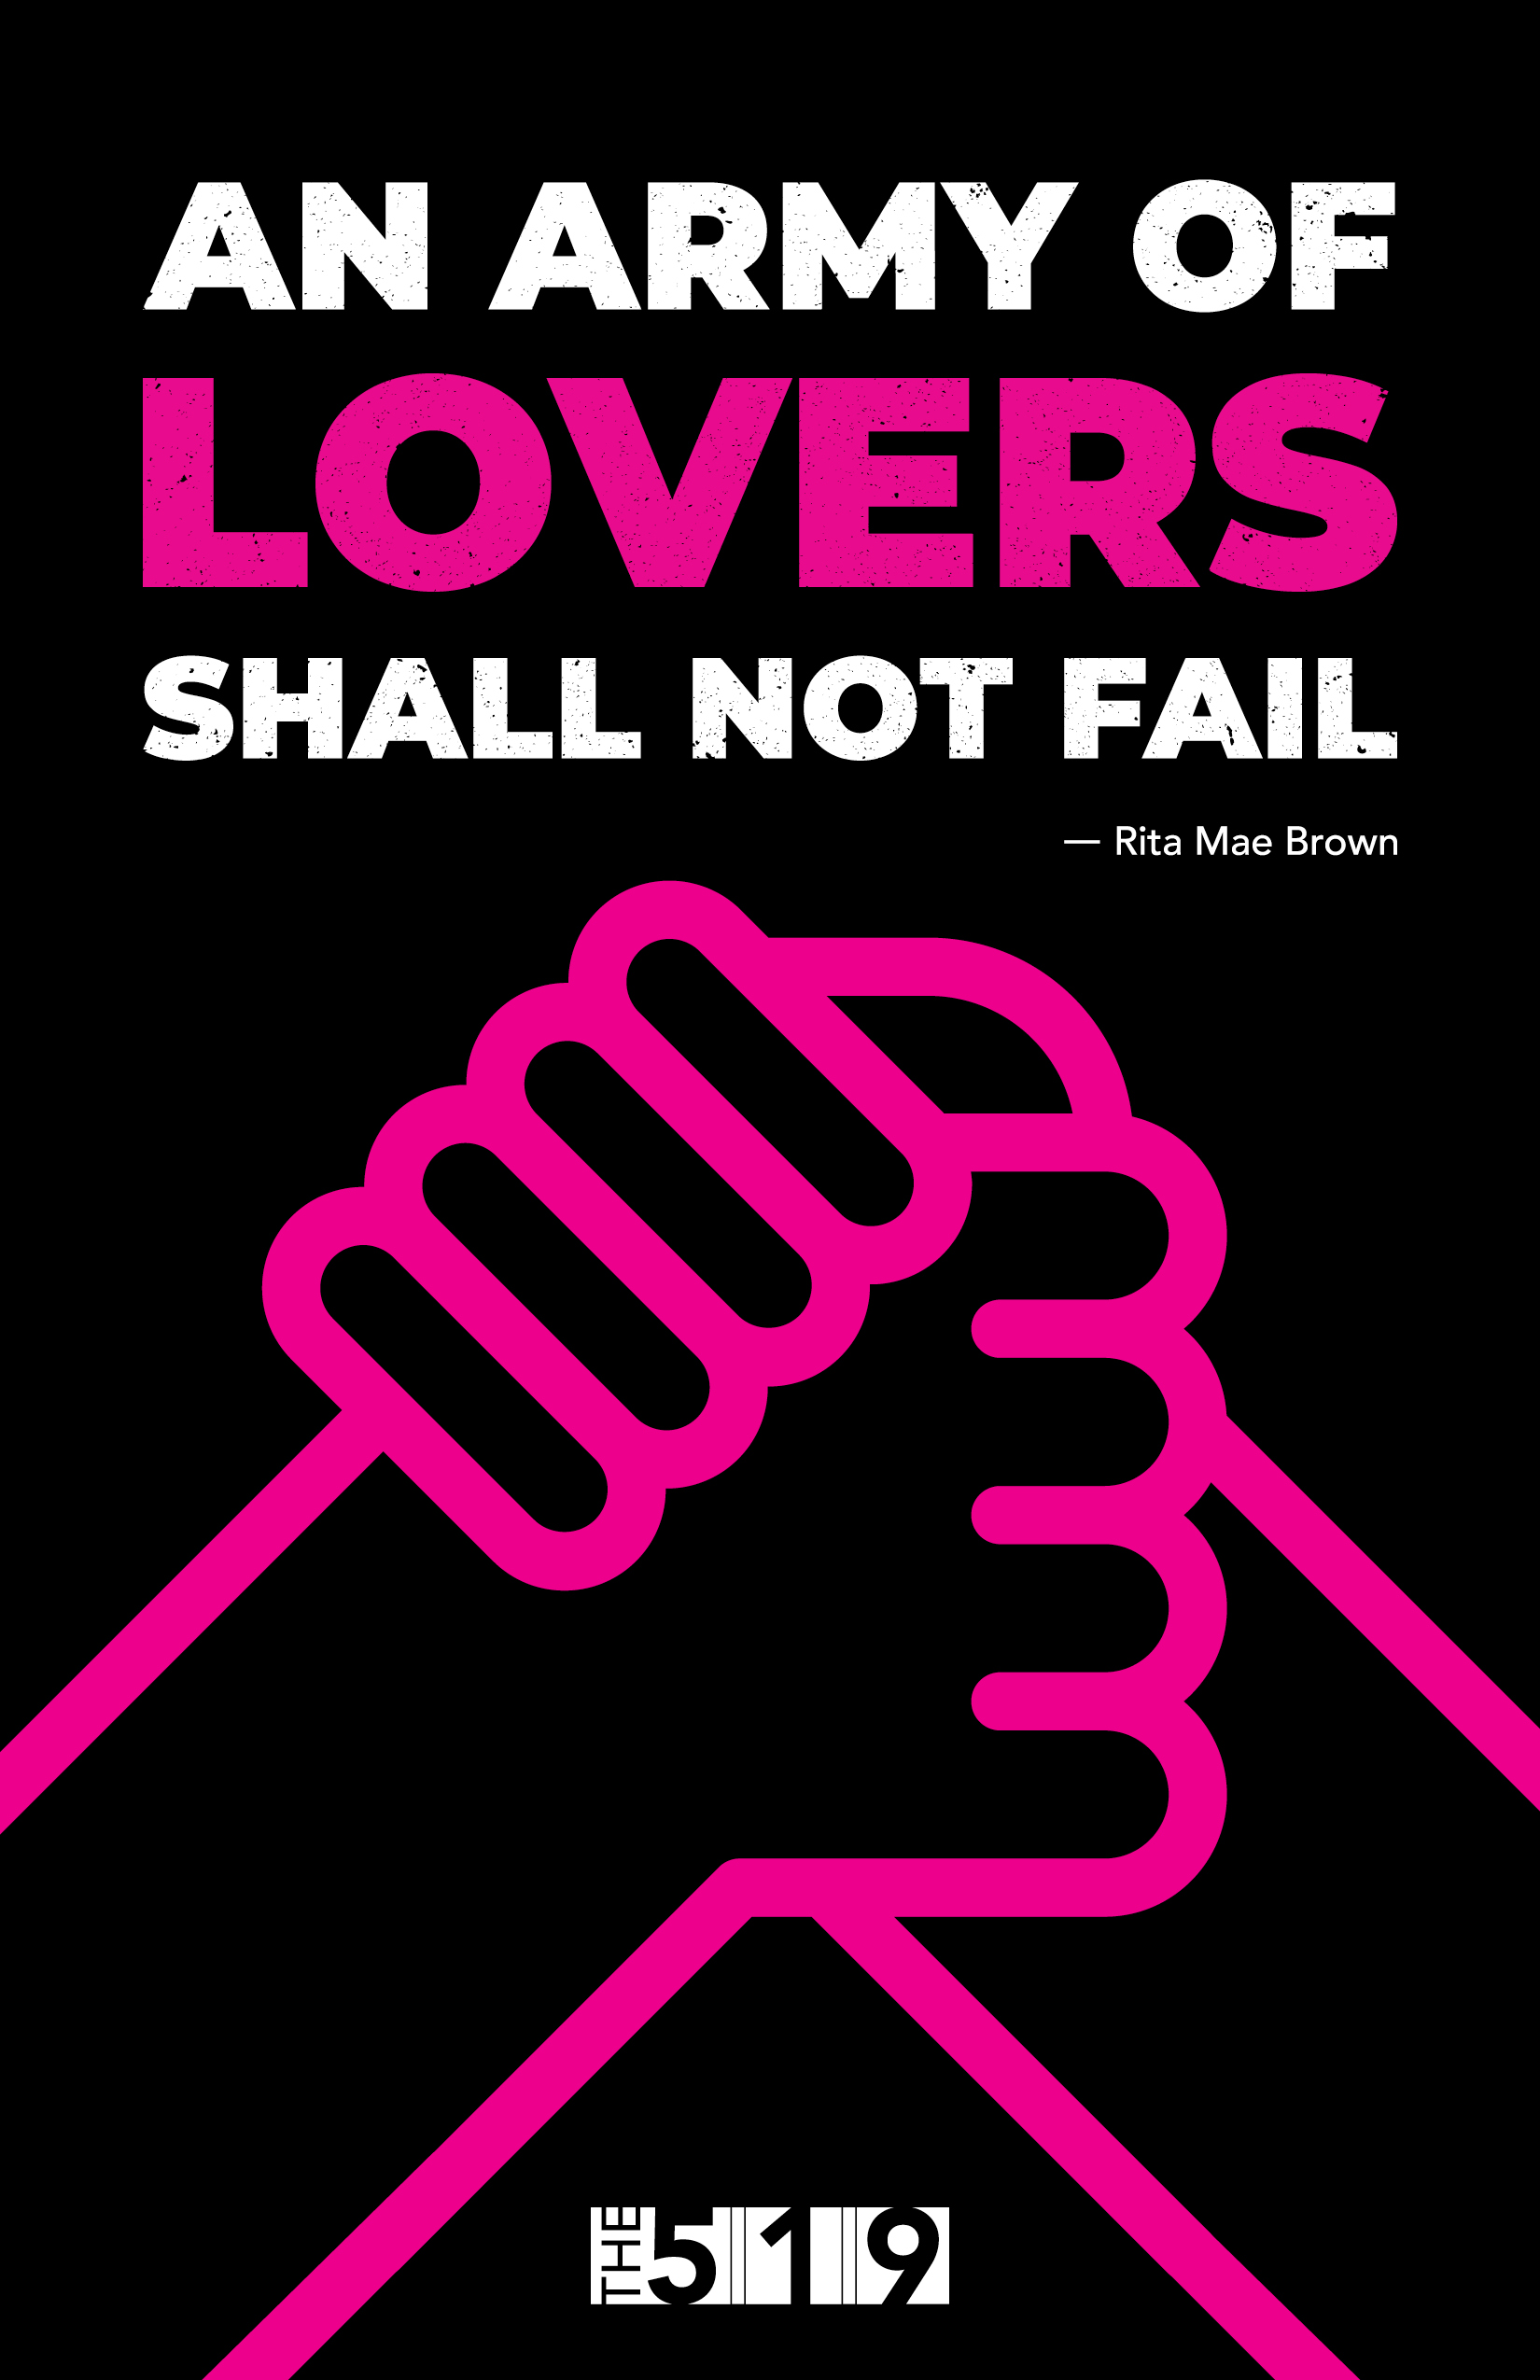 An army of lovers shall not fail, quote by Rita Mae Brown. Logo of The 519. Illustration of two hands grabbing each other.